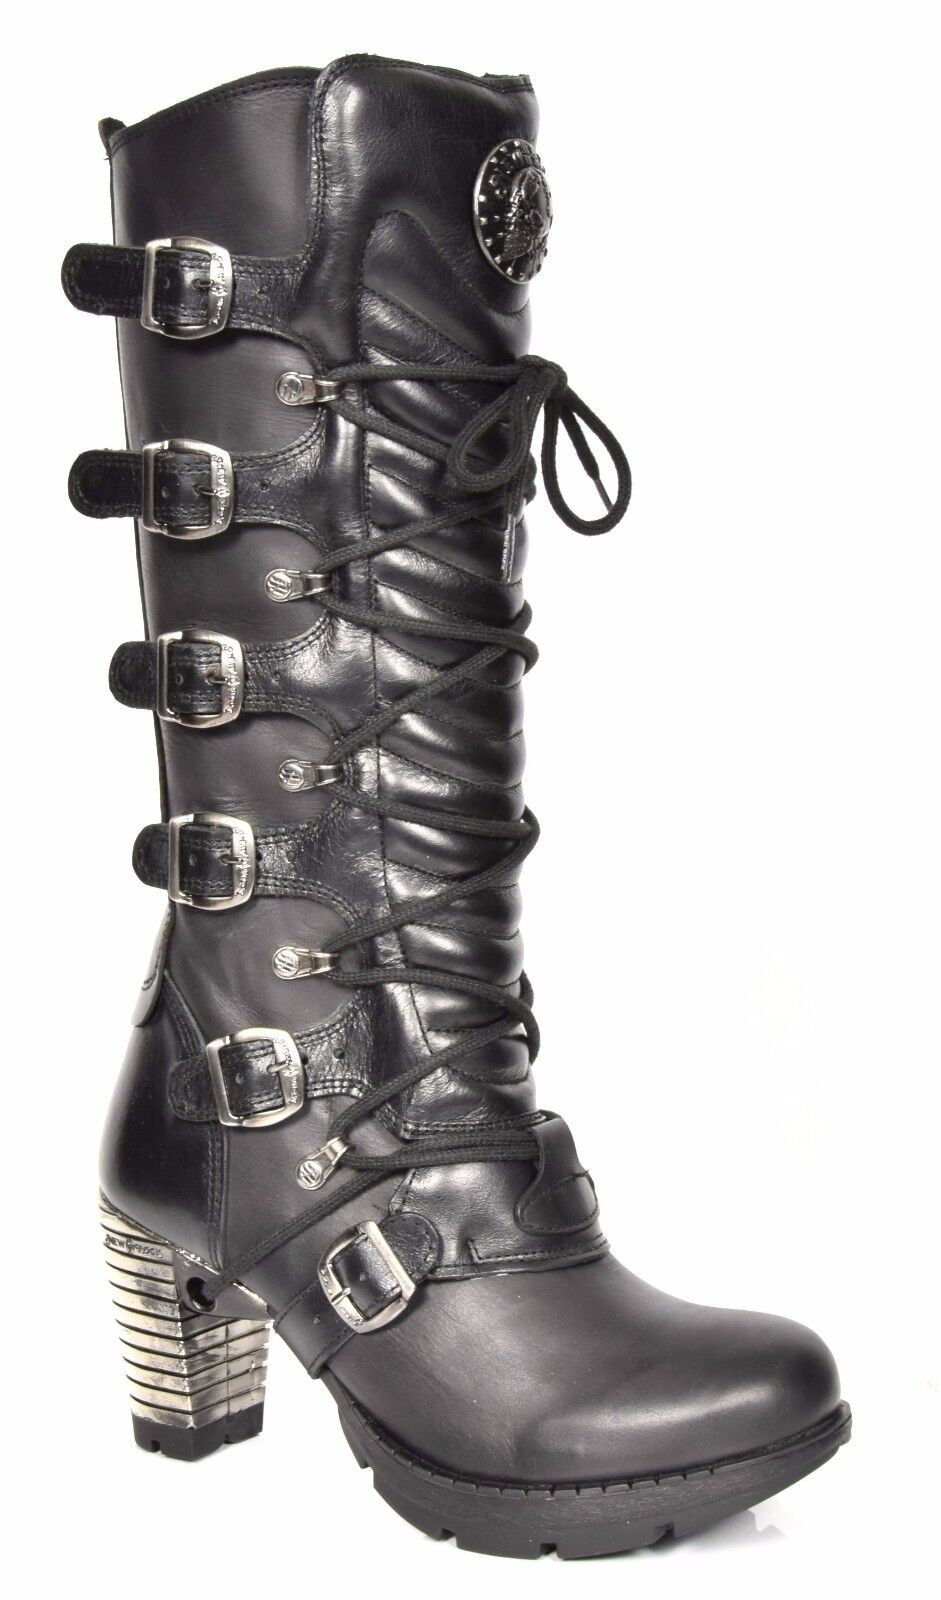 Grandes zapatos con descuento Womens Knee Length Black Leather Boots Designer NEW ROCK Gothic Retro Block Heel